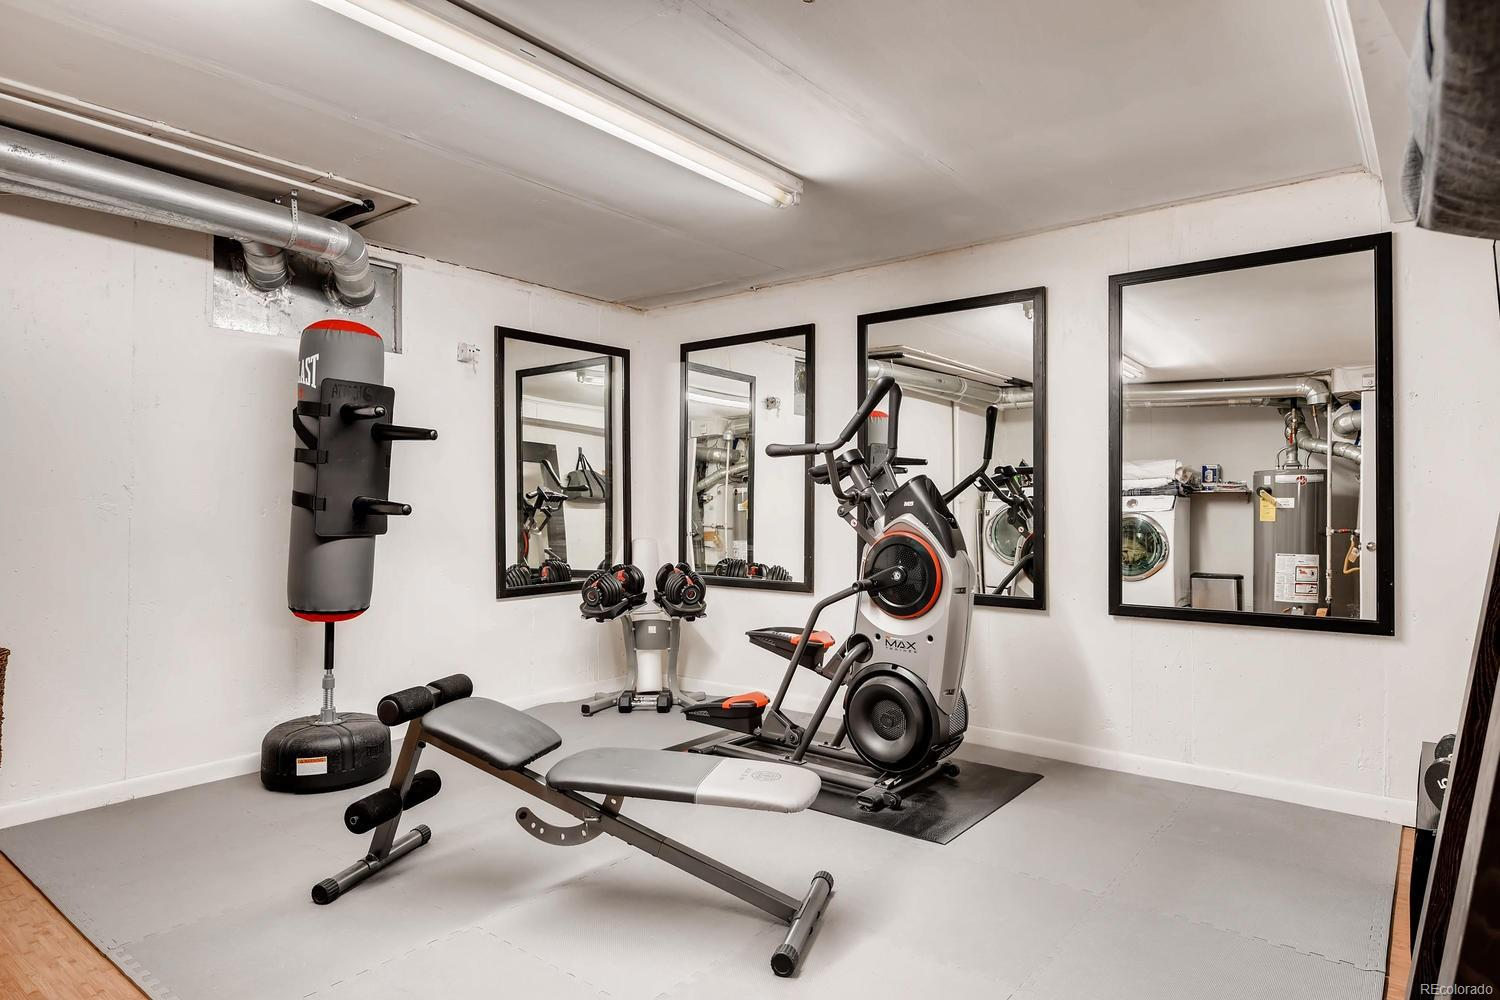 Flex space in laundry room - previously used as a fully-functioning gym!